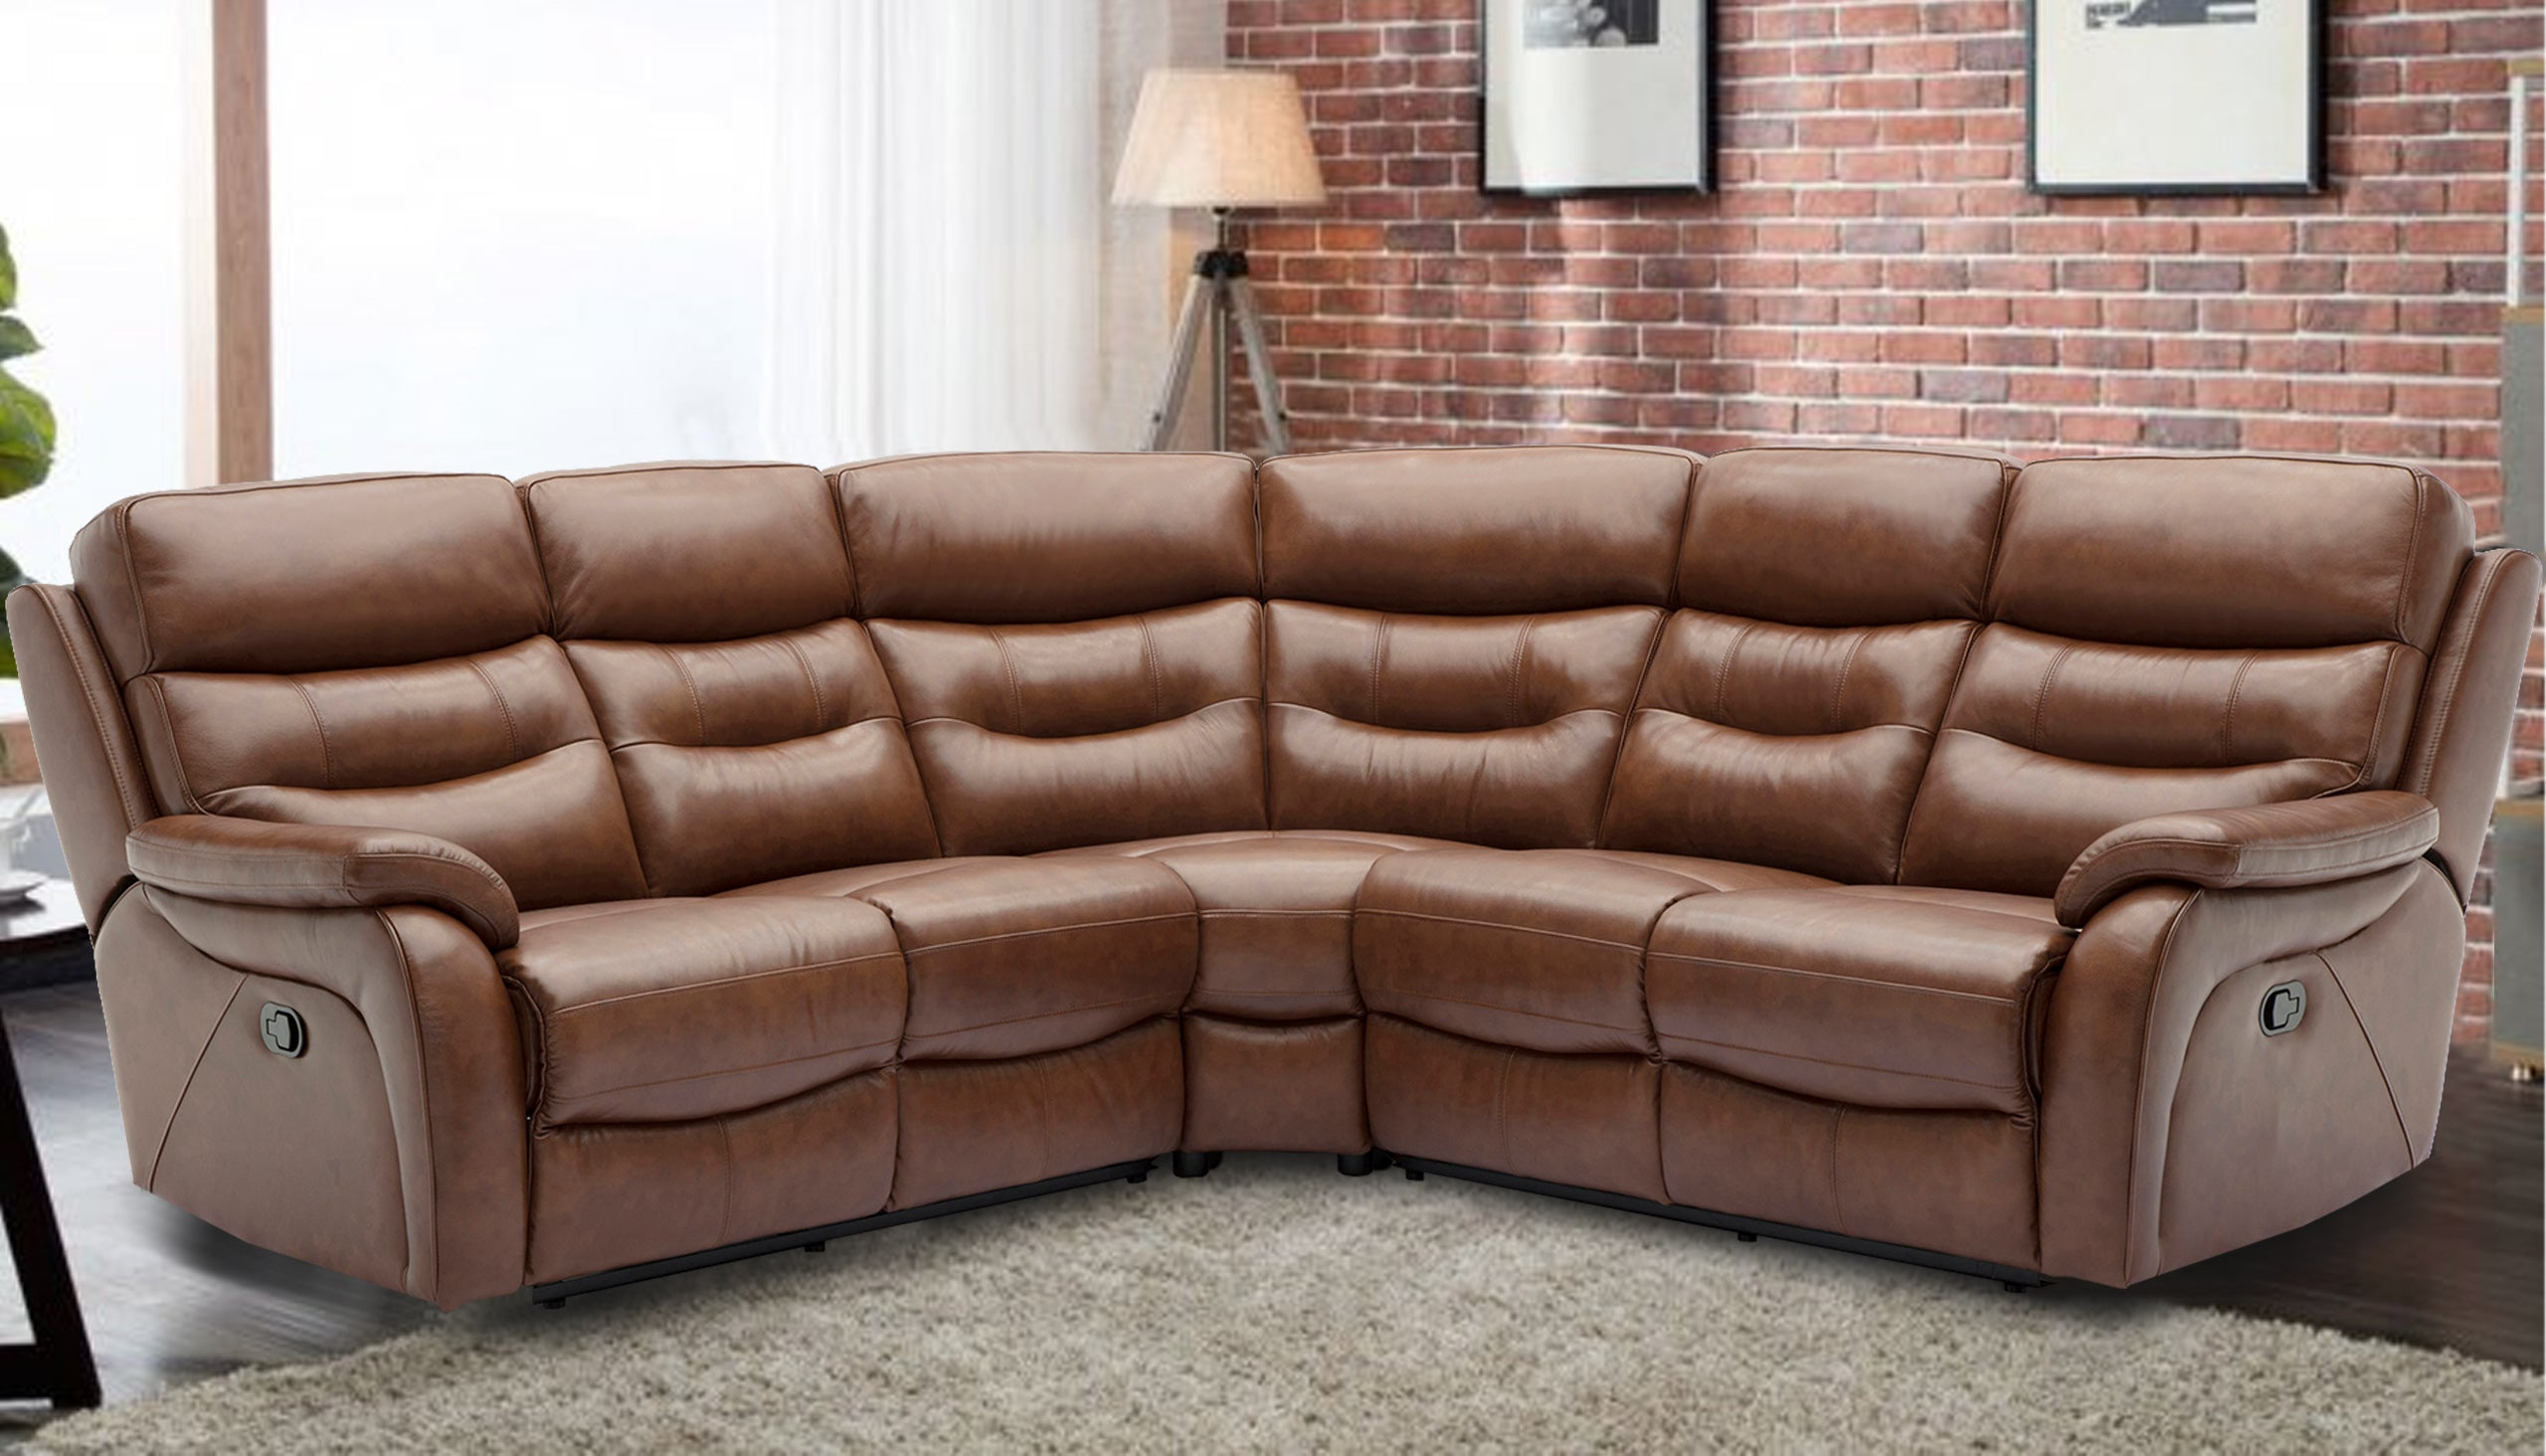 Picture of: Fabb Corner Sofas Fabb Furniture